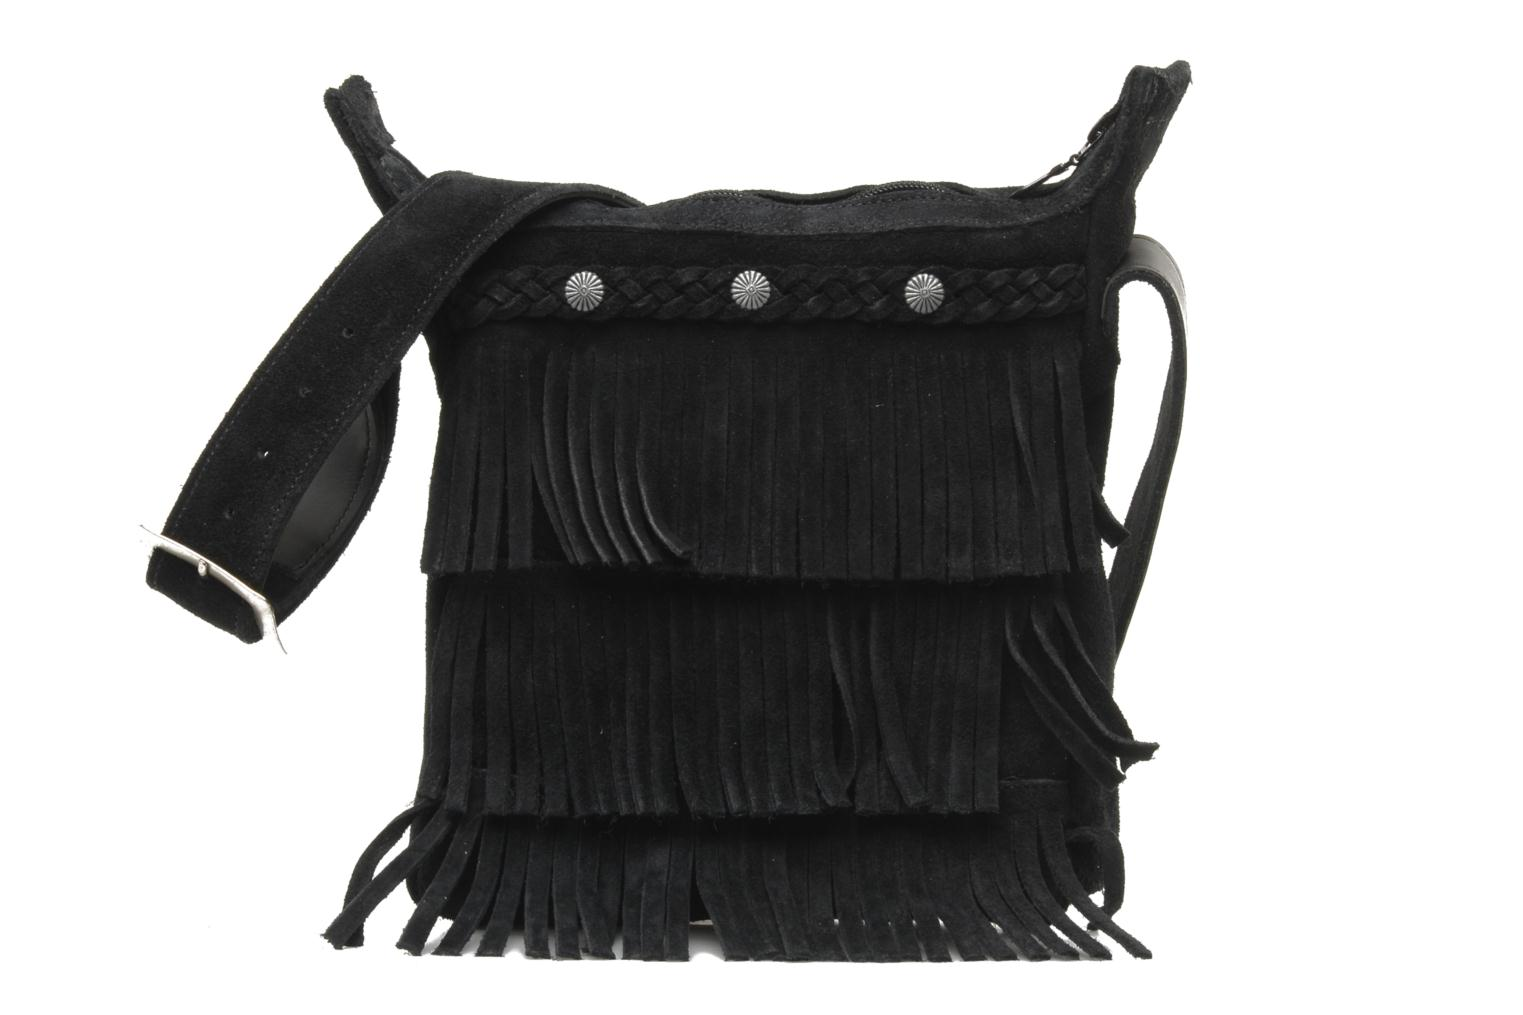 CROSS BODY FRINGE BAG Black Suede